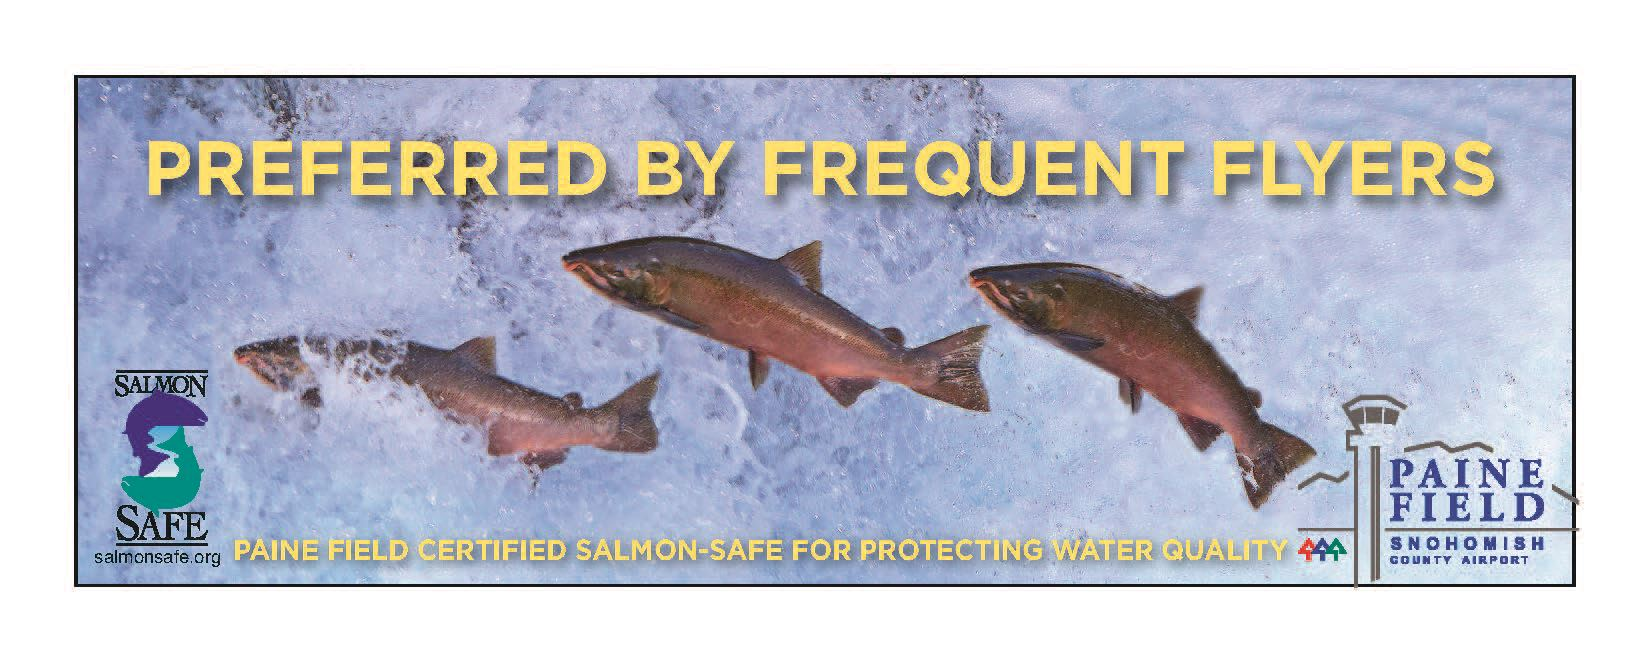 salmonsafe paine field campaign crop